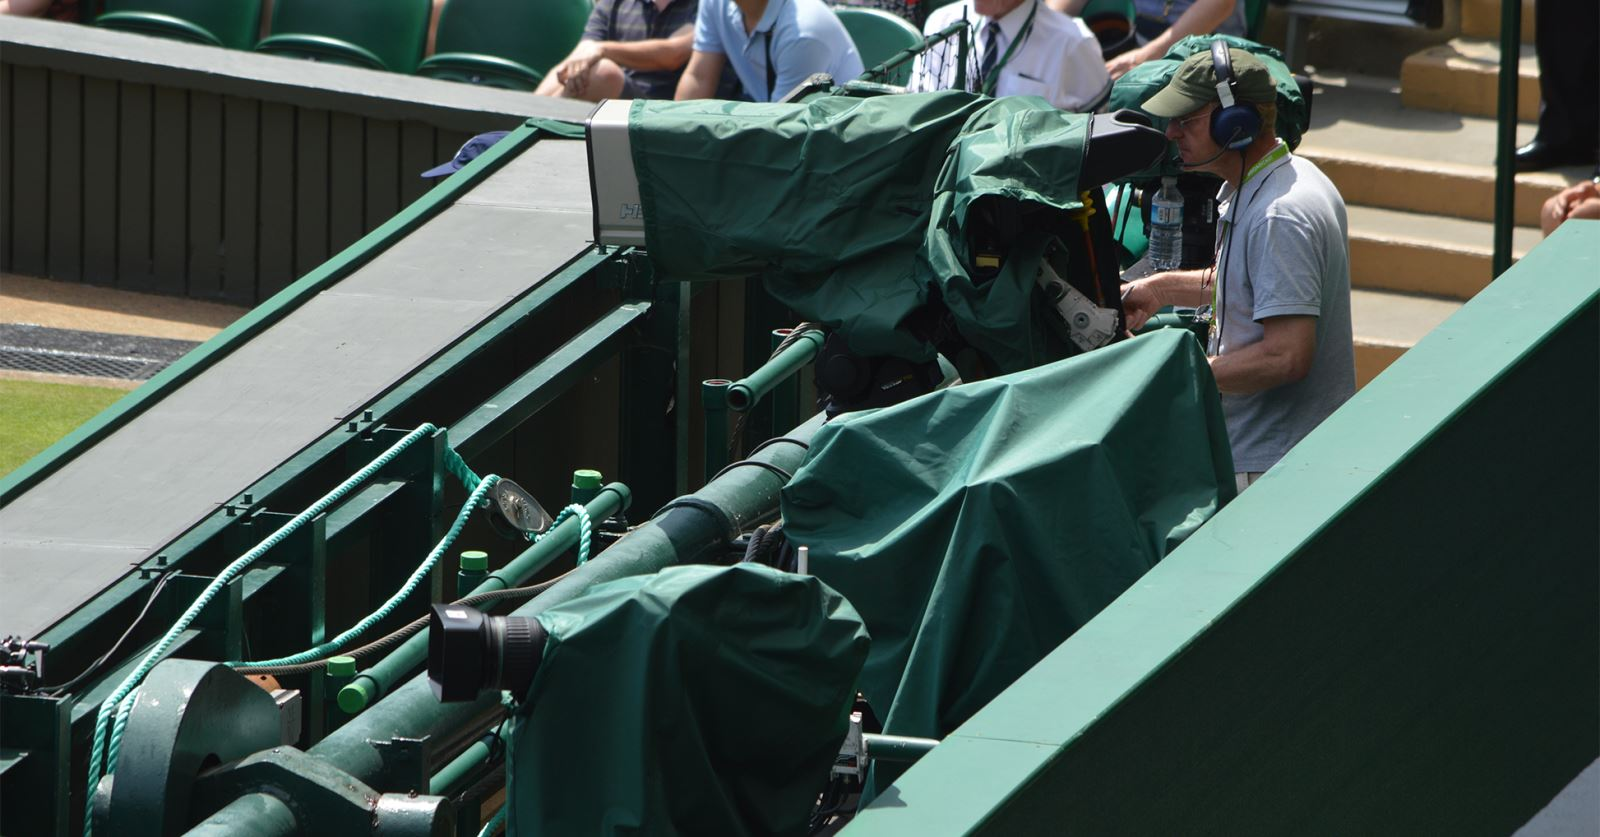 Camera covers from our latest new sponsor company, CP Cases, in action at the Wimbledon Tennis Championships